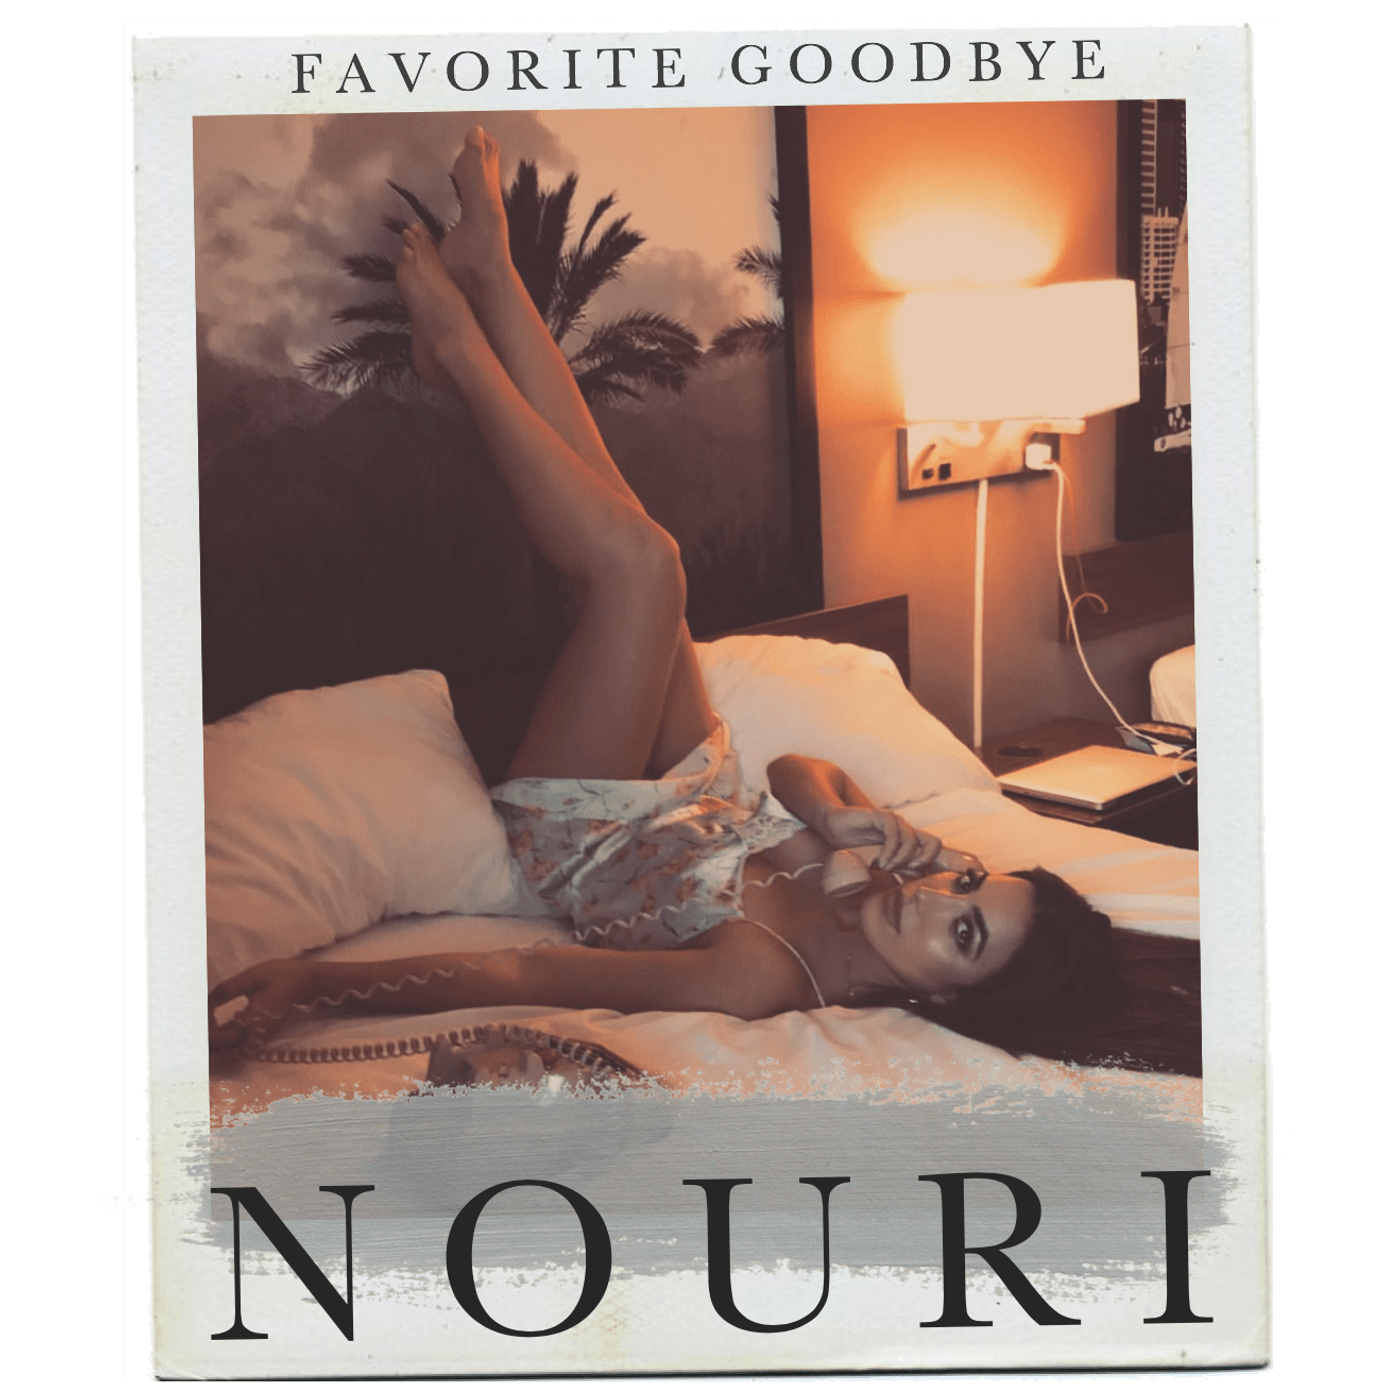 NOURI_favorite_goodbye_cover.png